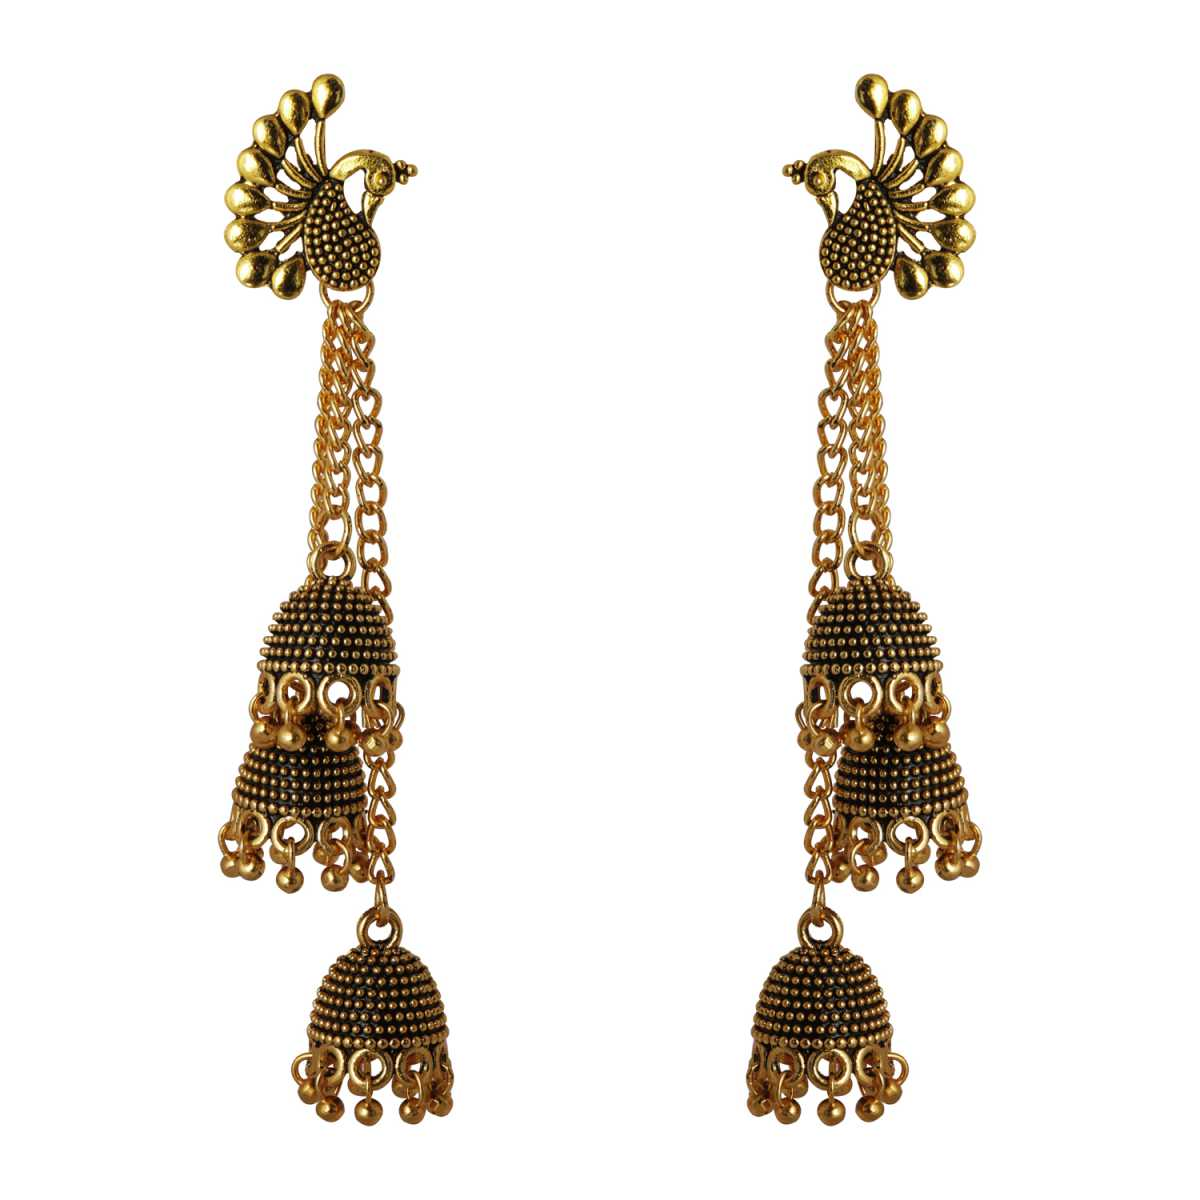 Silver Shine Charming Peacock 3 Layered Tassel Jhumki Earrings for Women